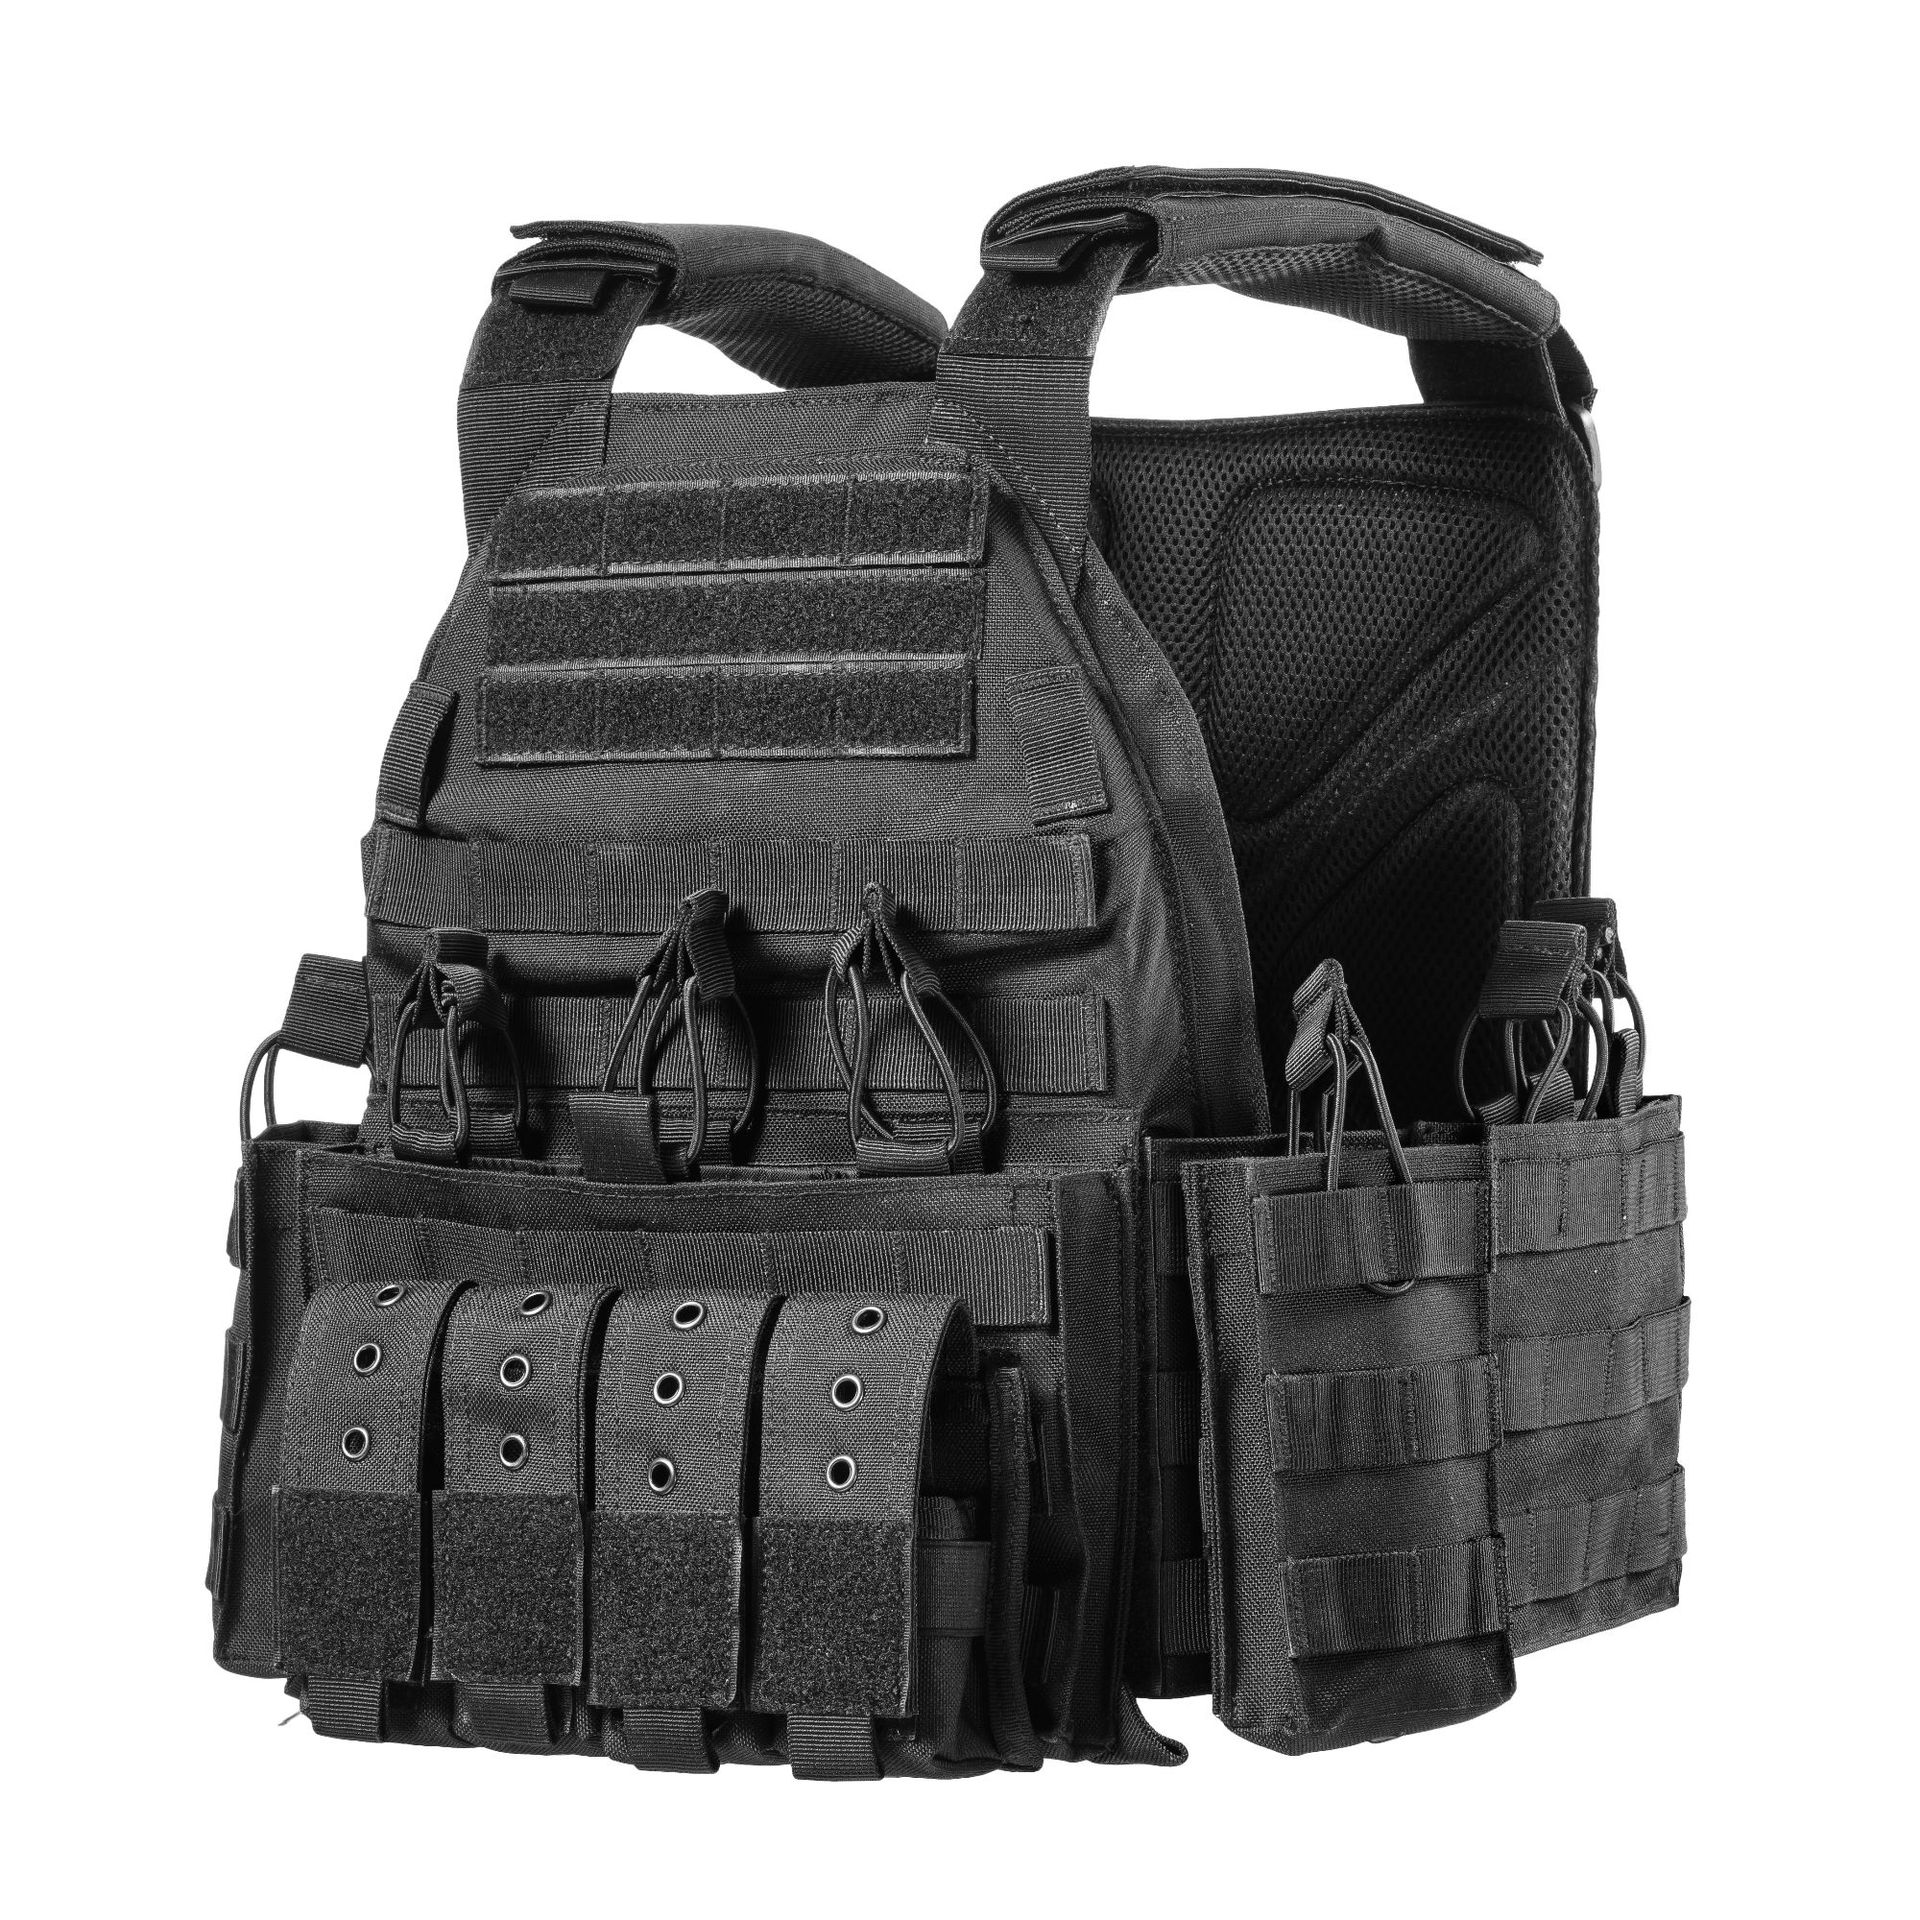 Yakeda Nylon Multi-functional Field Operations Tactical Vest Outdoor Tactical Vest Sports Equipment Manufacturers Wholesale